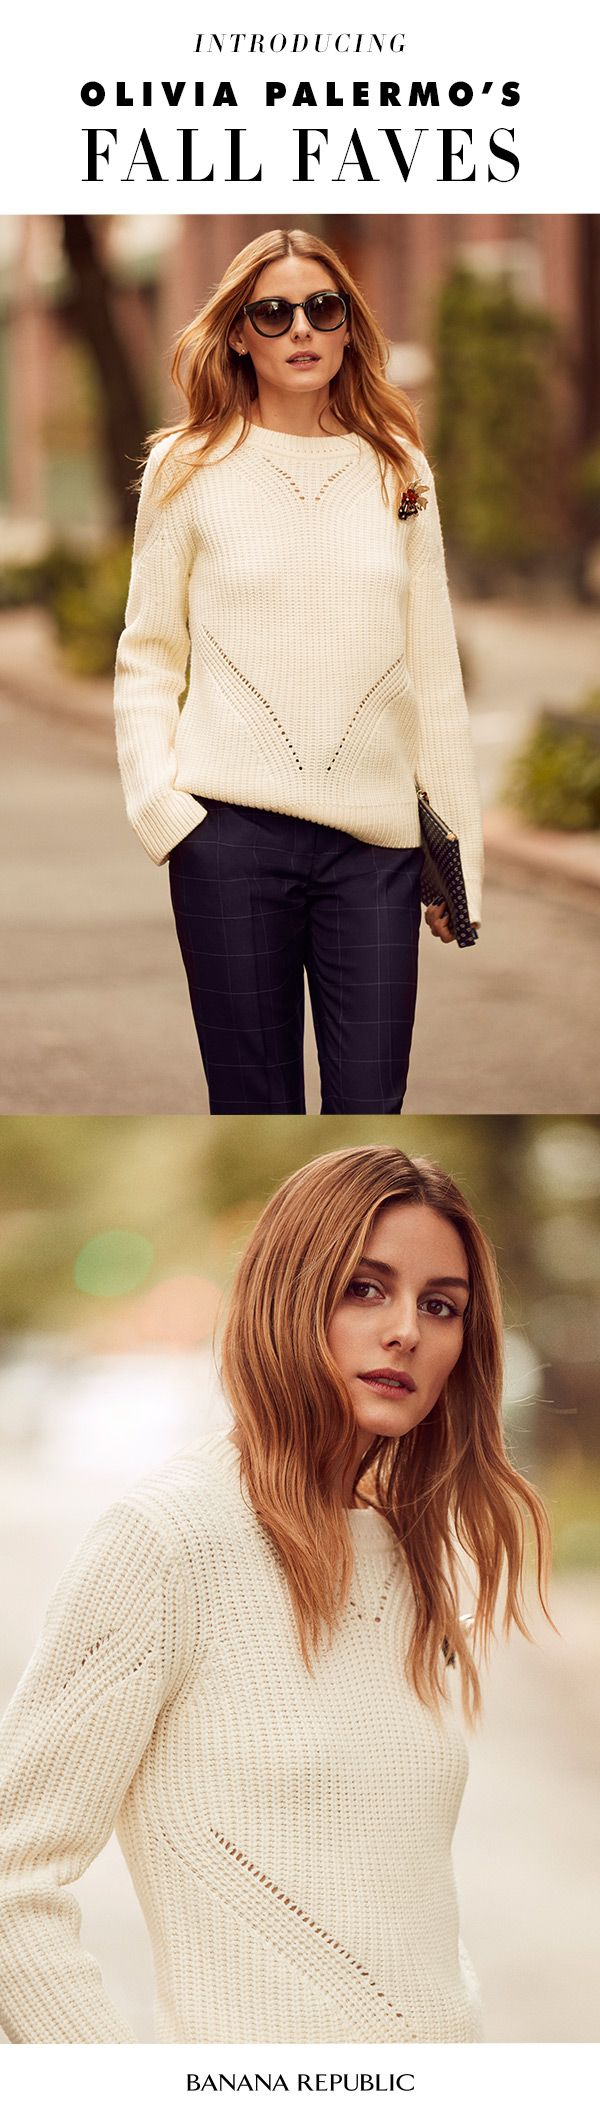 Olivia Palermo wears the Ribbed Pullover for rooftop cocktails on a crisp evening. Equal parts cozy and chic, this sweater will work with skirts and tailored pants alike.